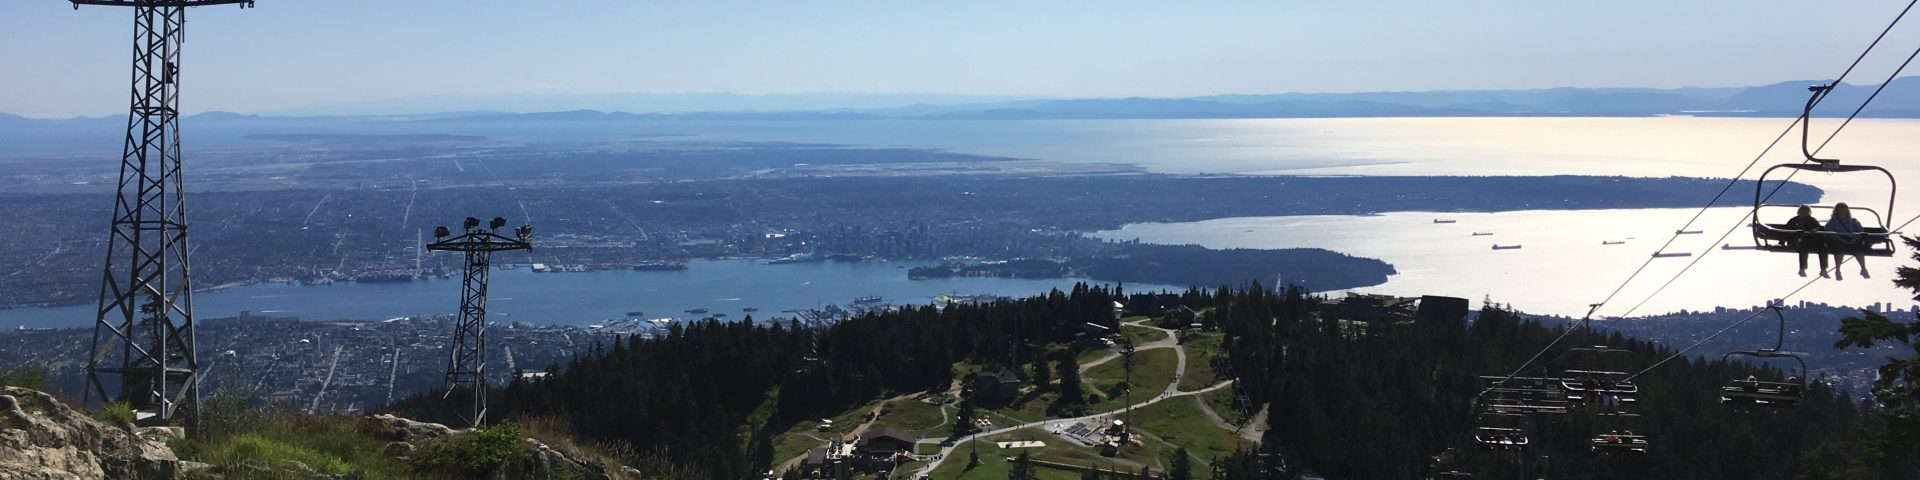 The View from Grouse Mountain, Vancouver